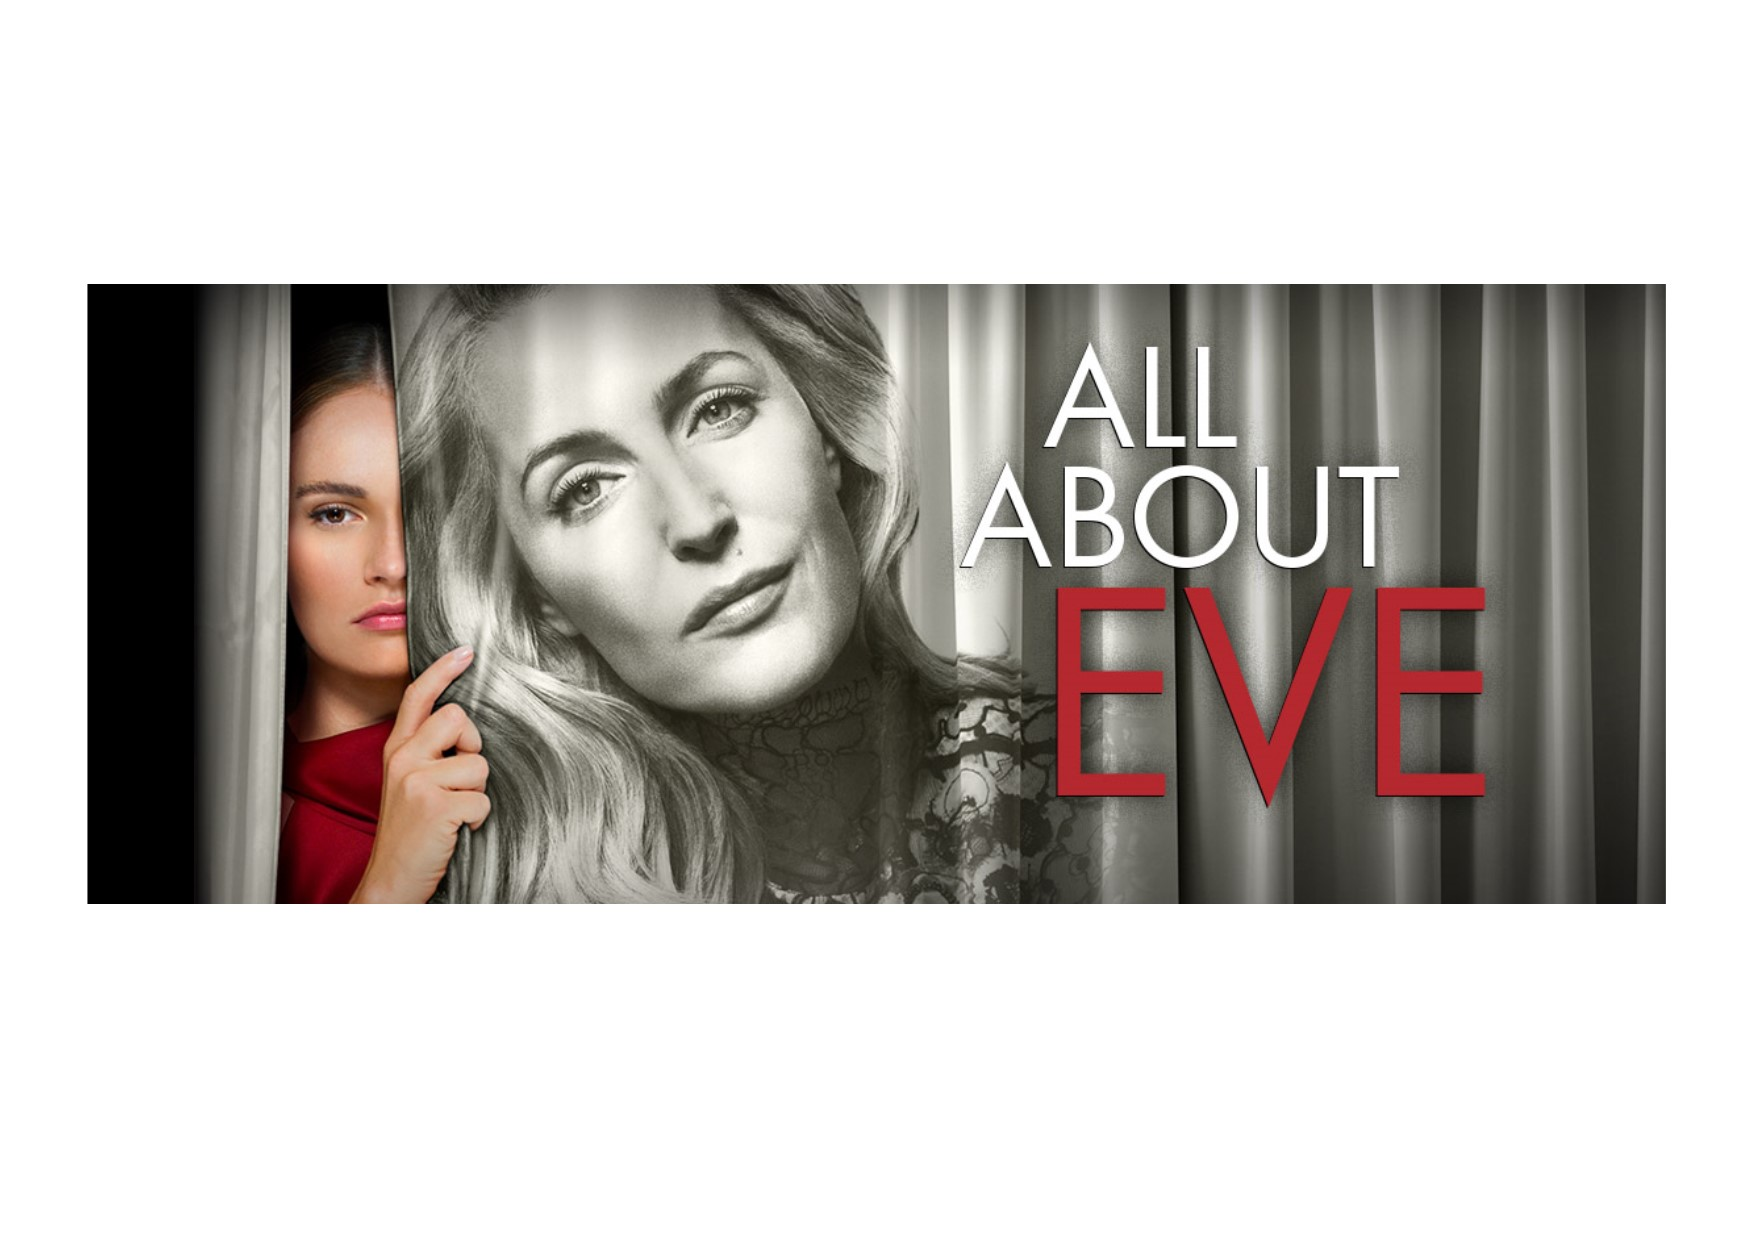 All About Eve open Cities Banner.jpg